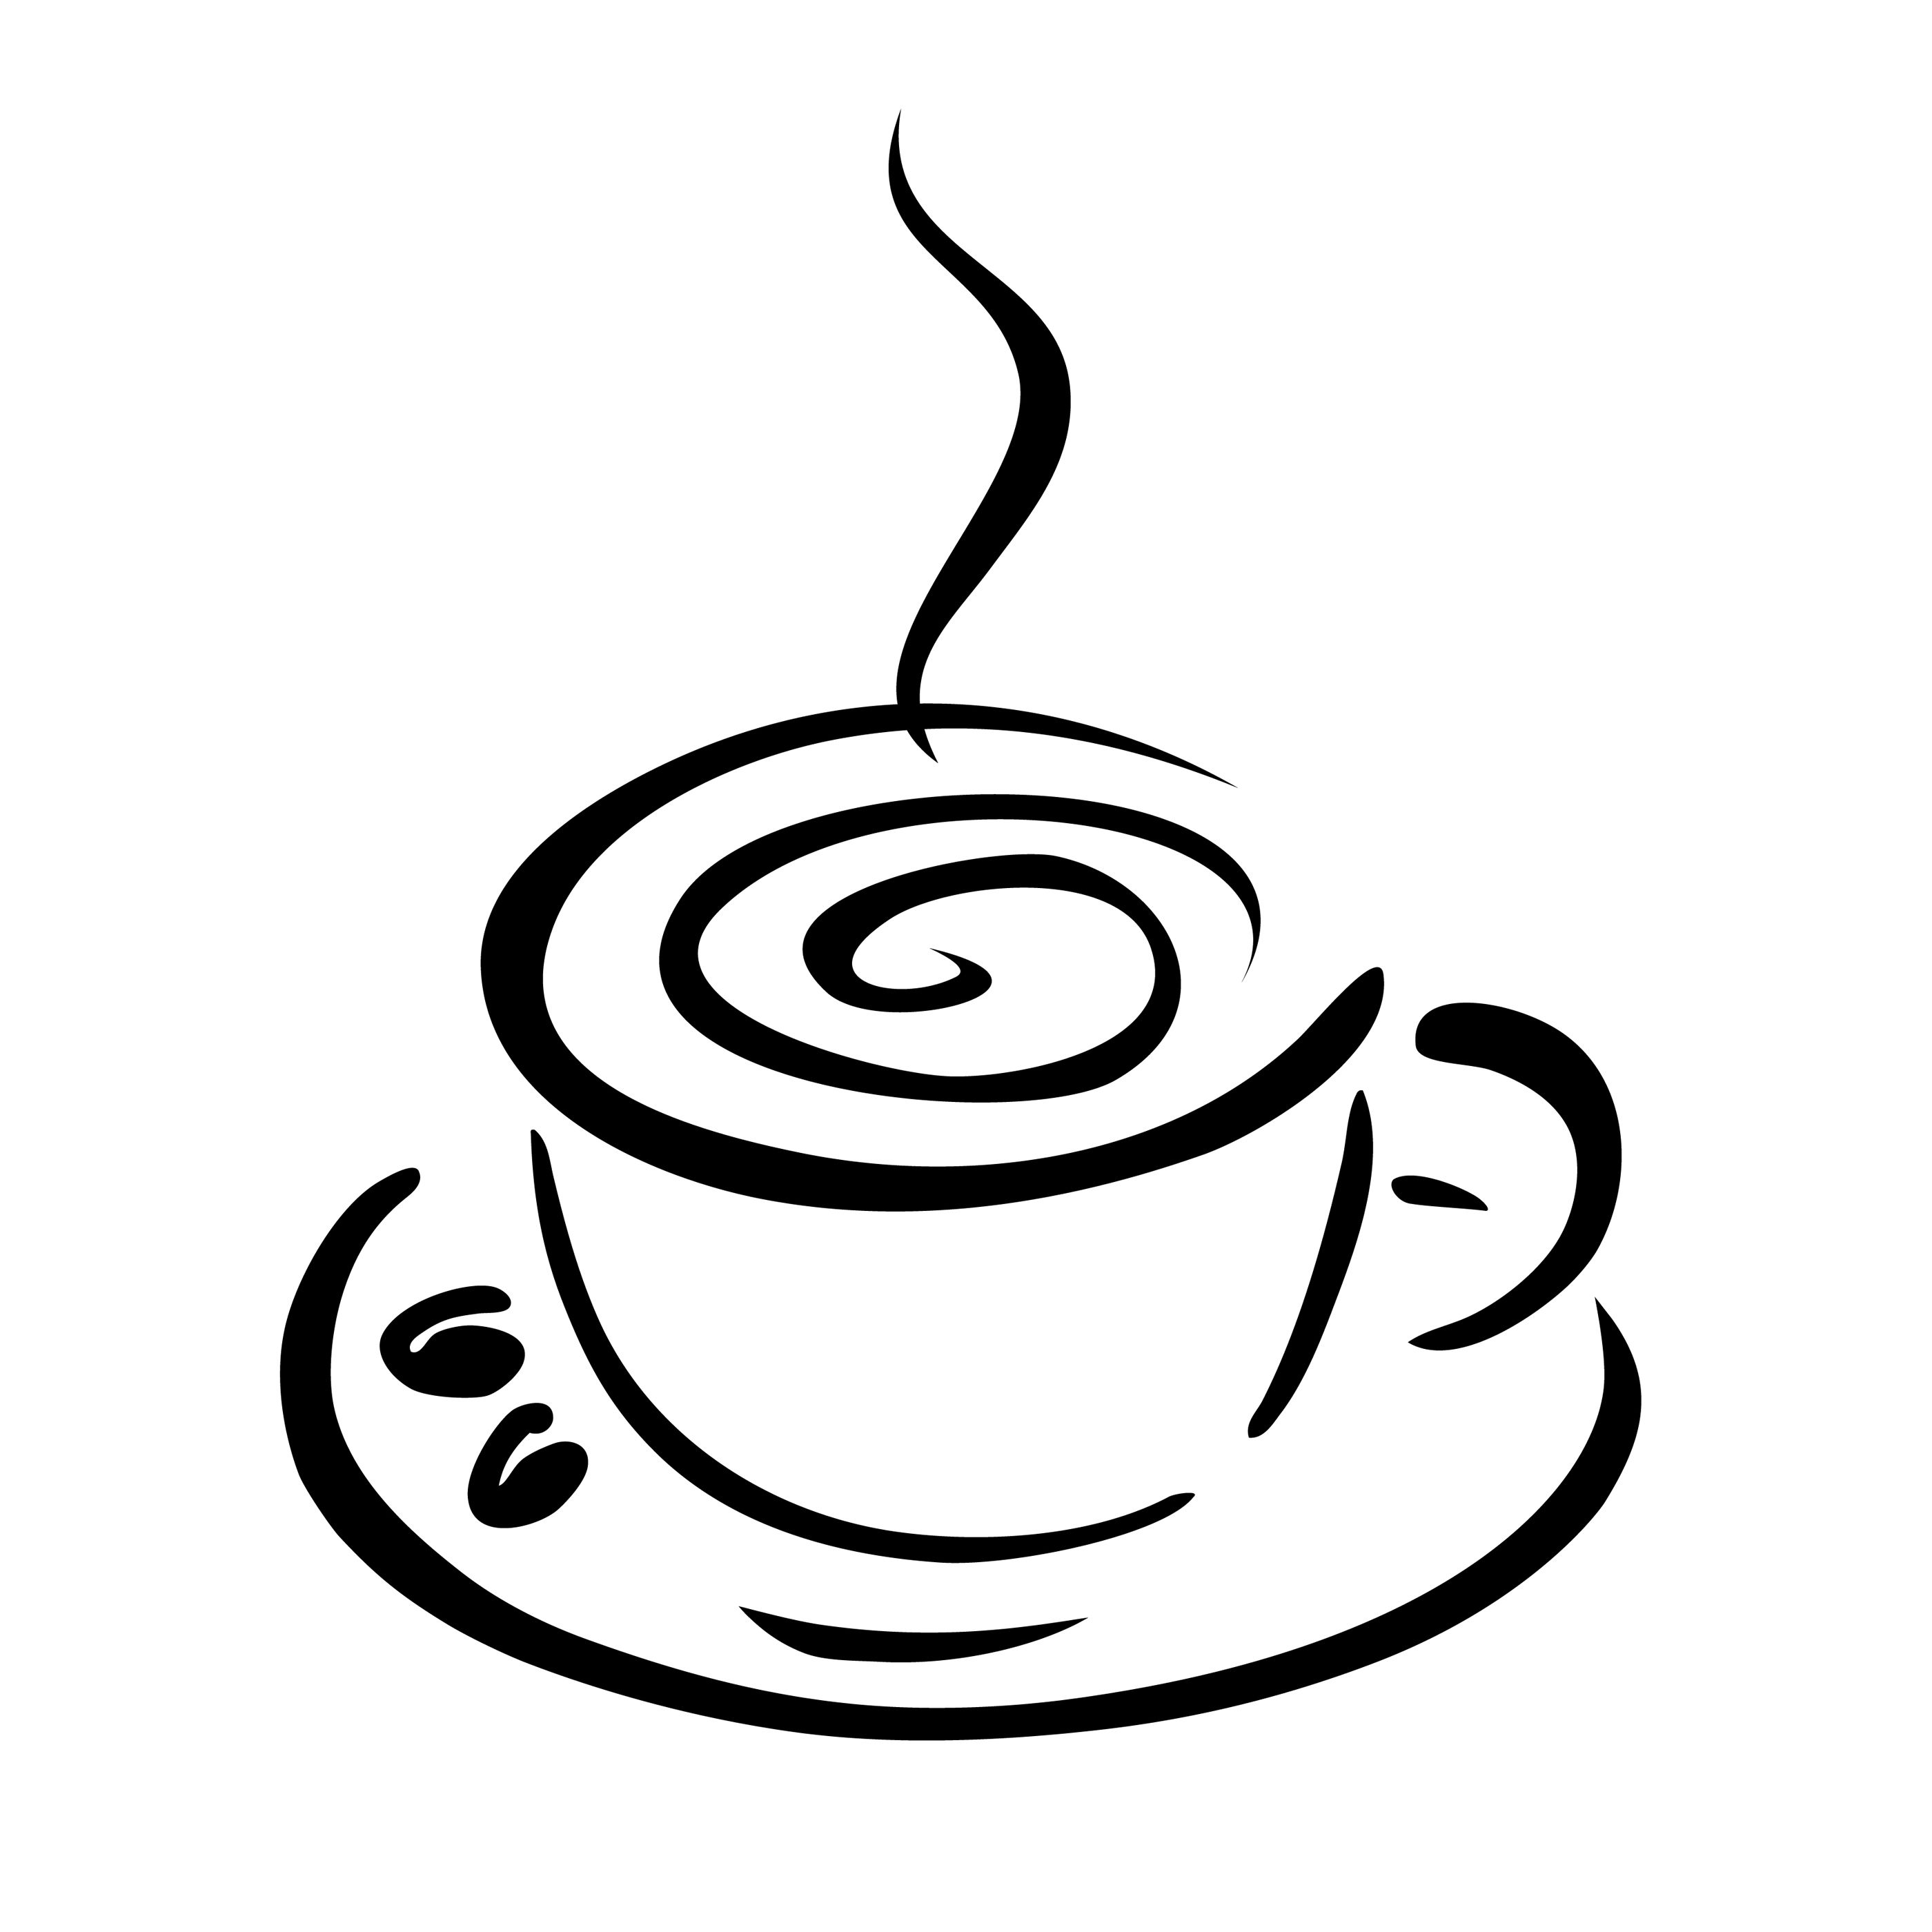 Cafe clipart black and white. Coffee cup kid